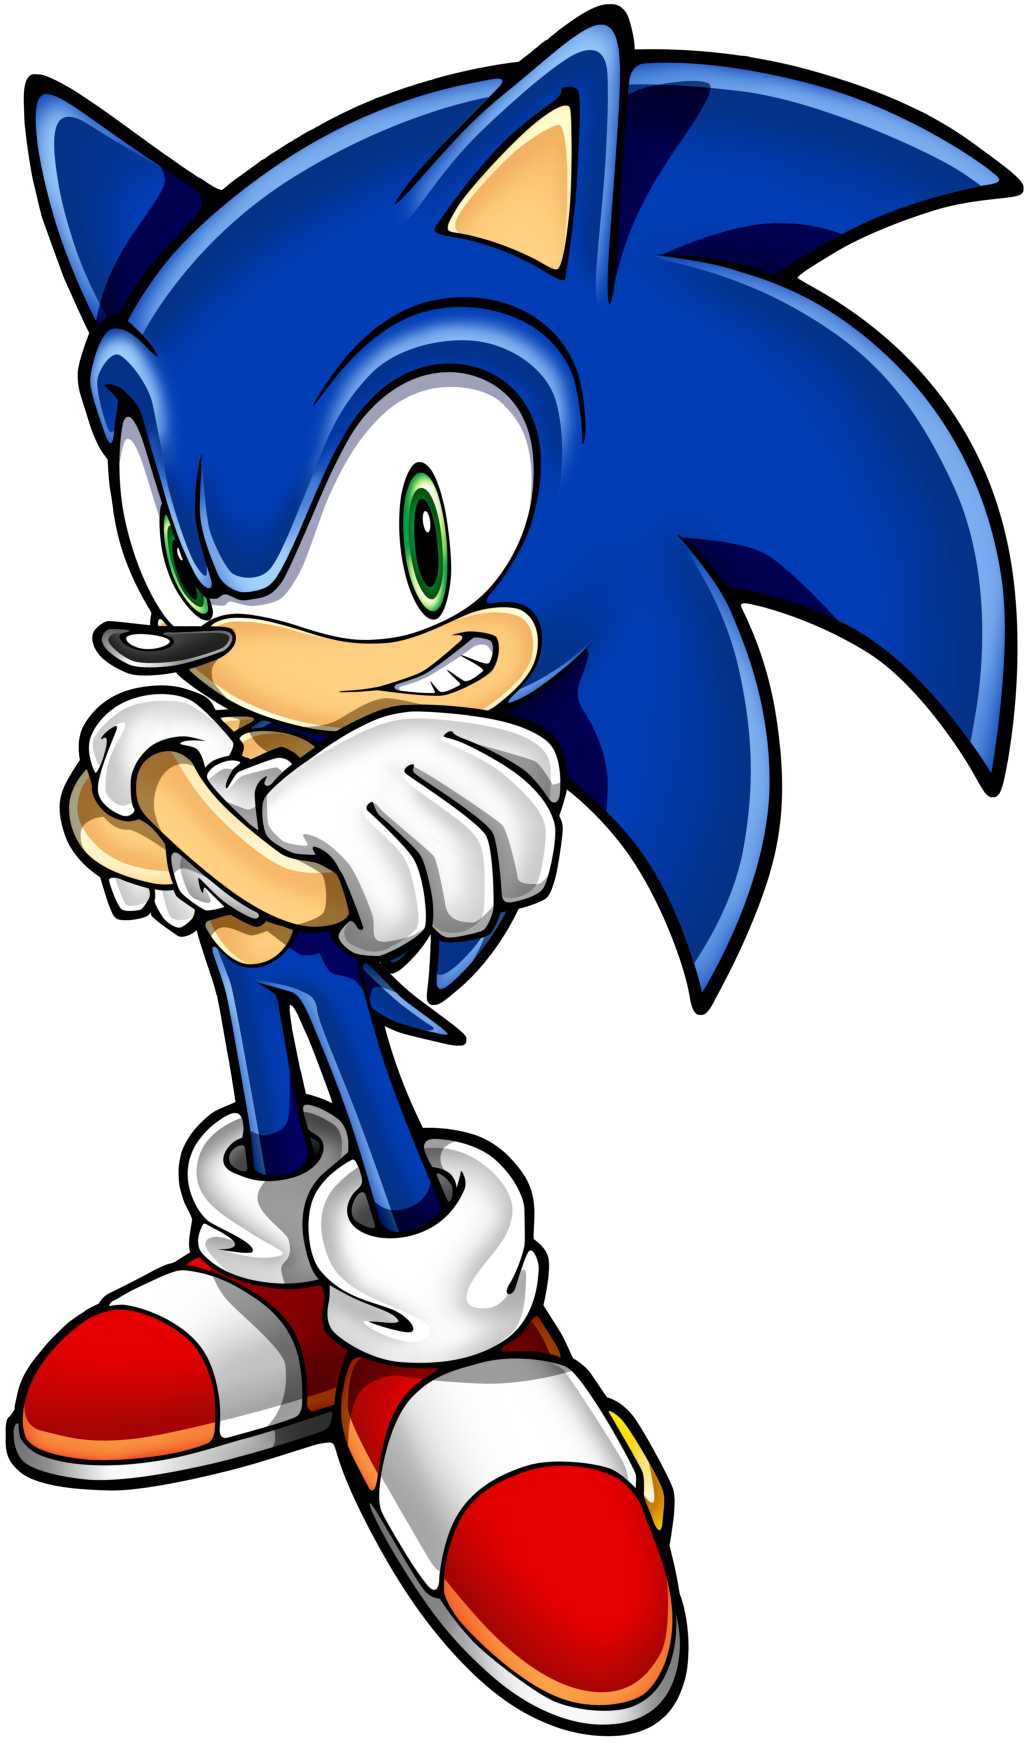 Sonic-The-Hedgehog-PNG-1143435.png - Sonic The Hedgehog PNG